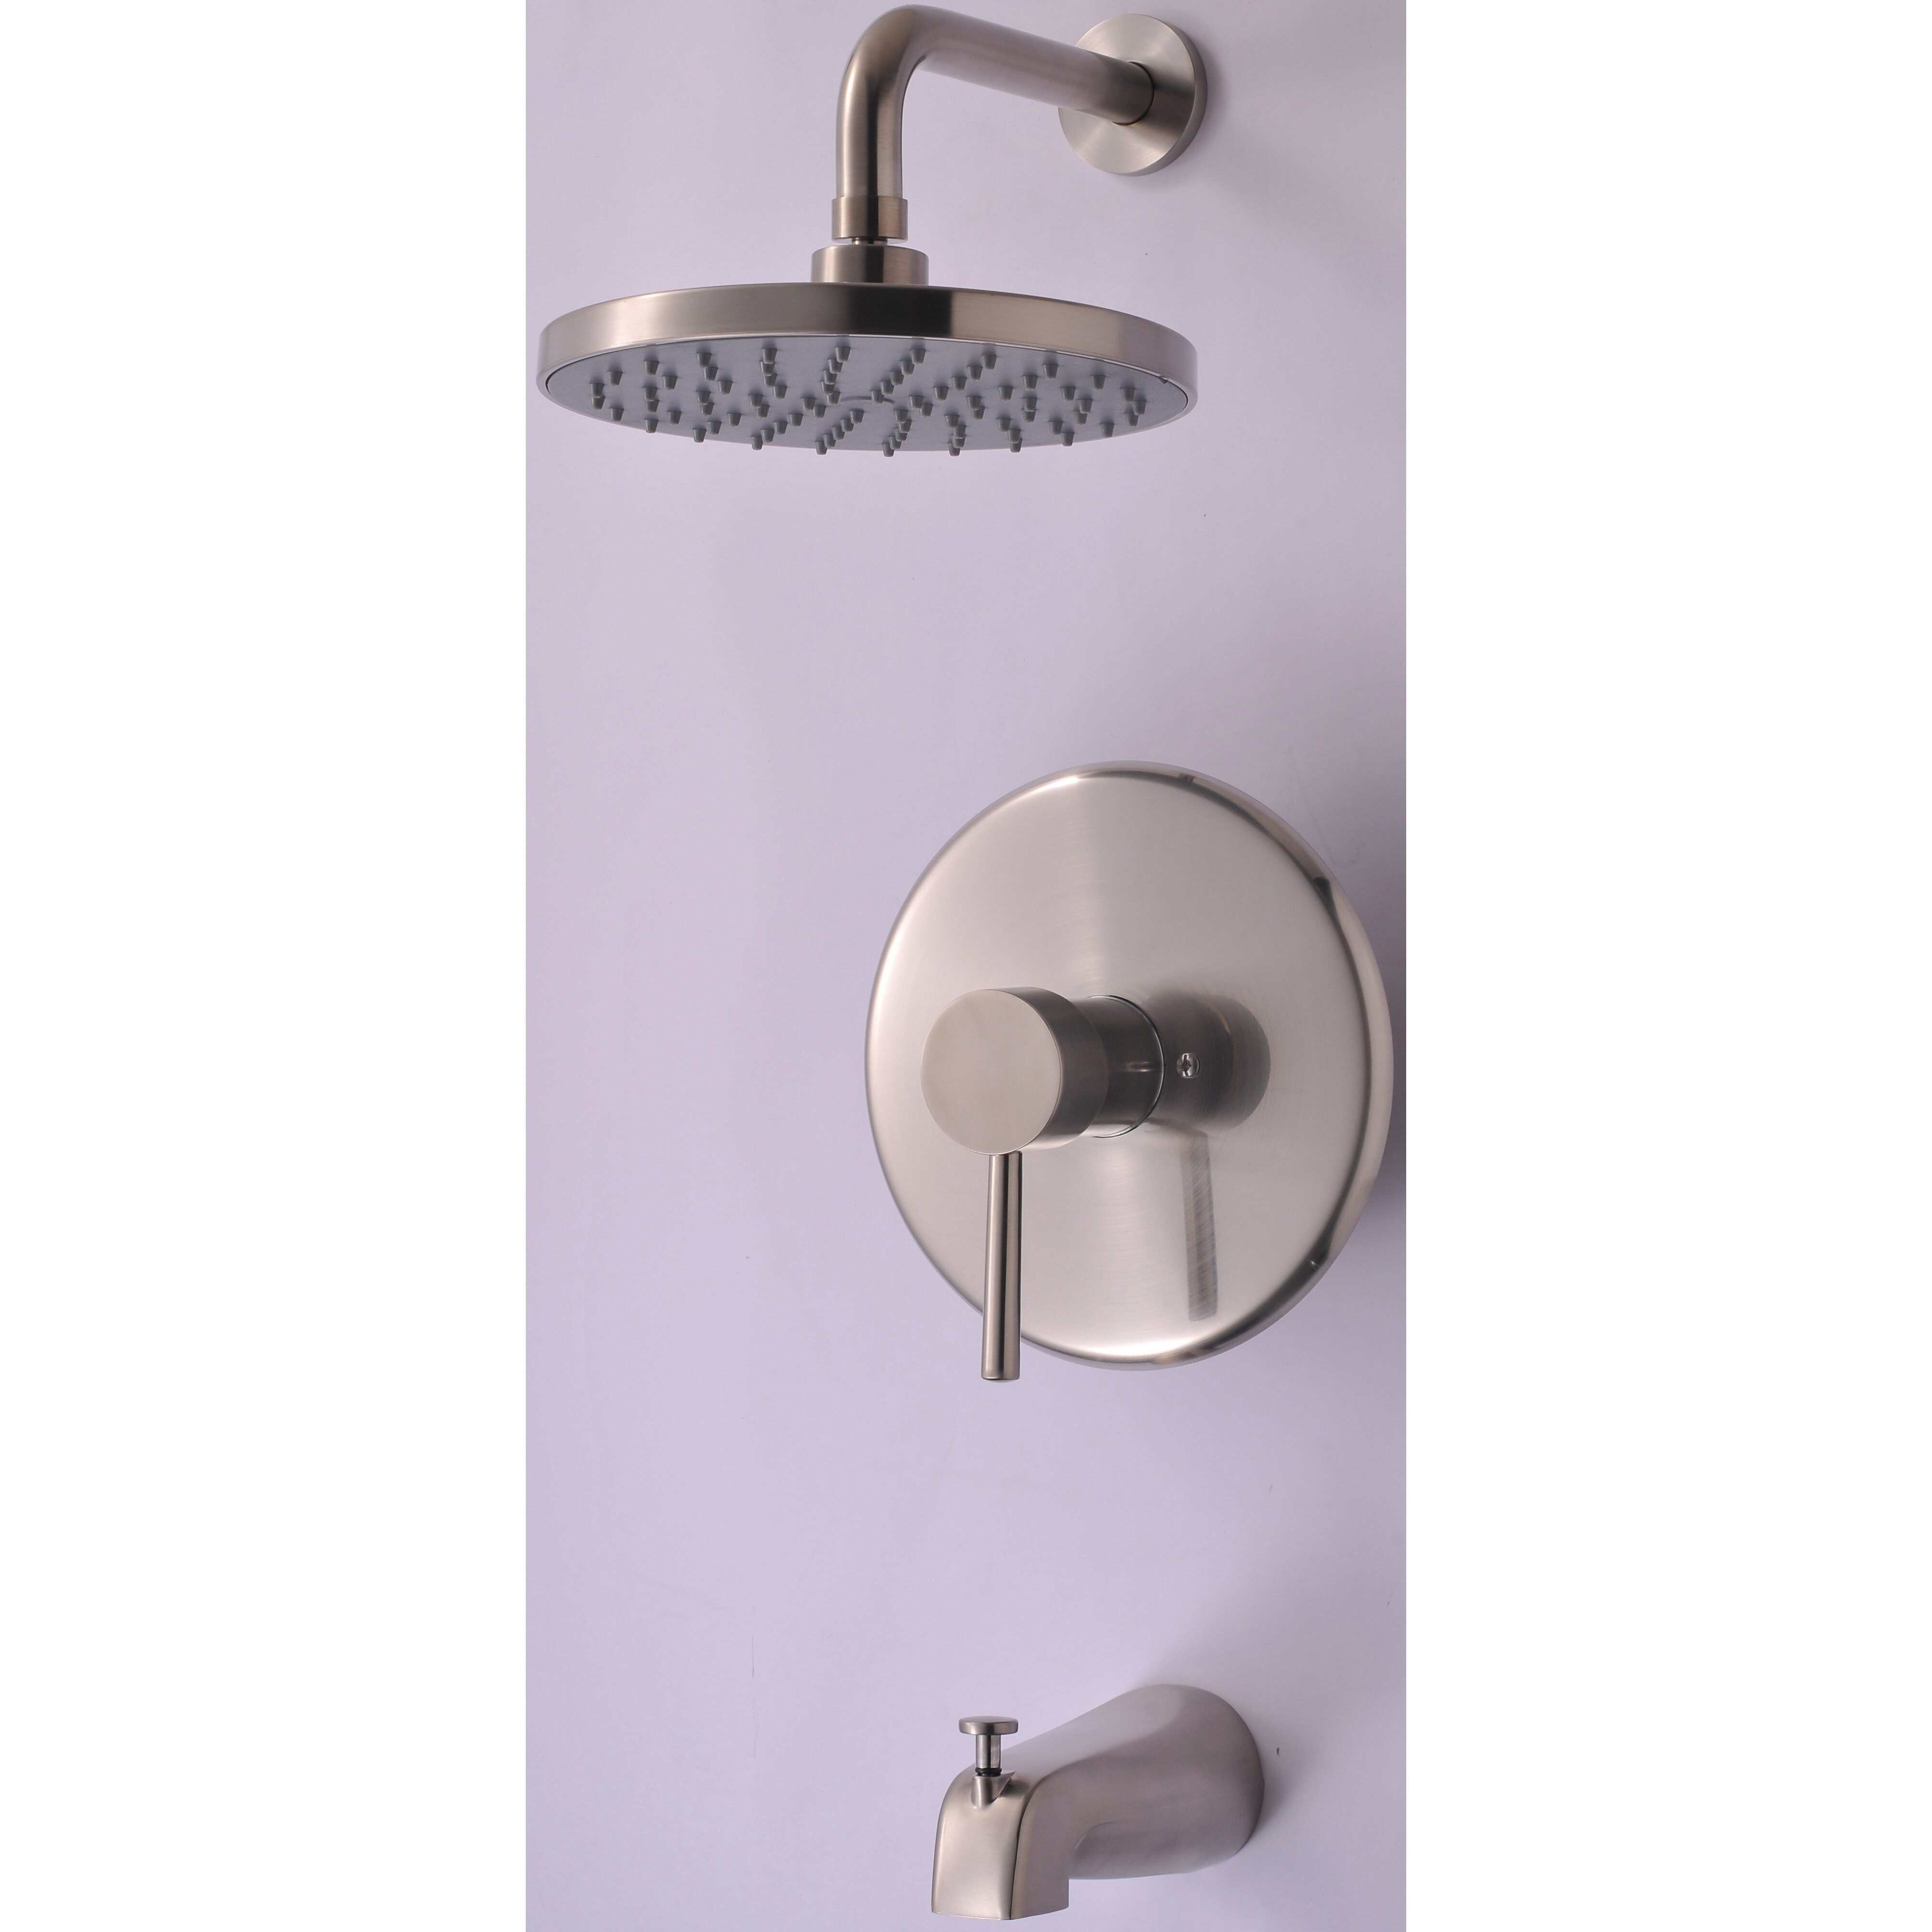 Tub and Shower Faucet by Hardware House